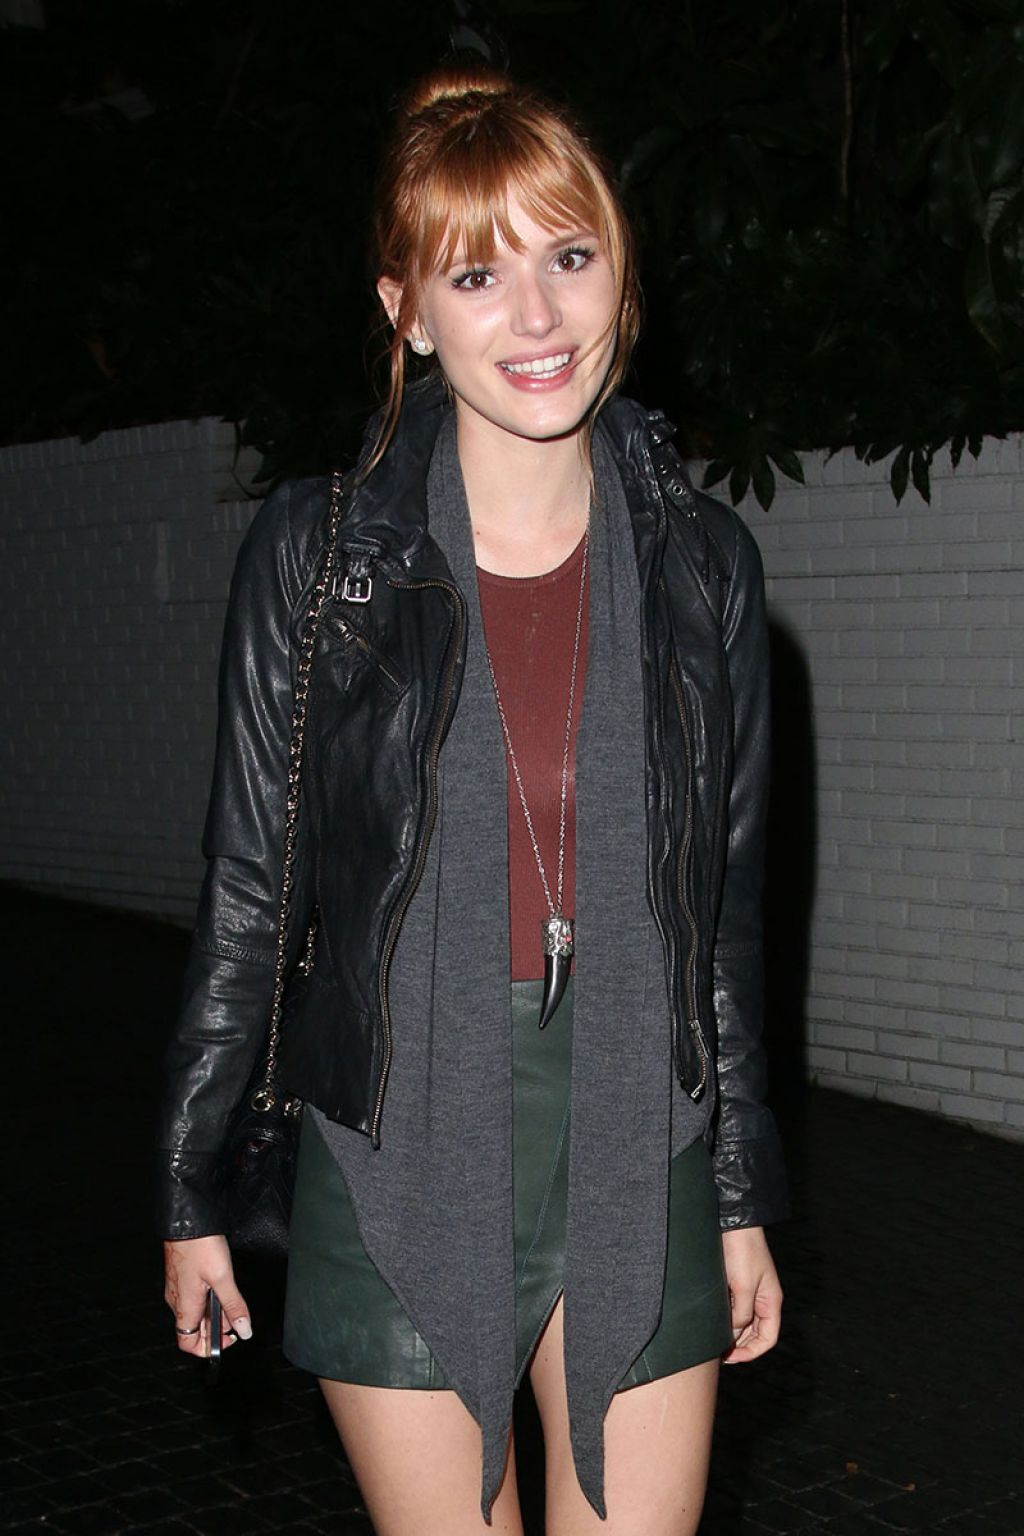 Bella Thorne  Attends the Chateau Marmont in West Hollywood